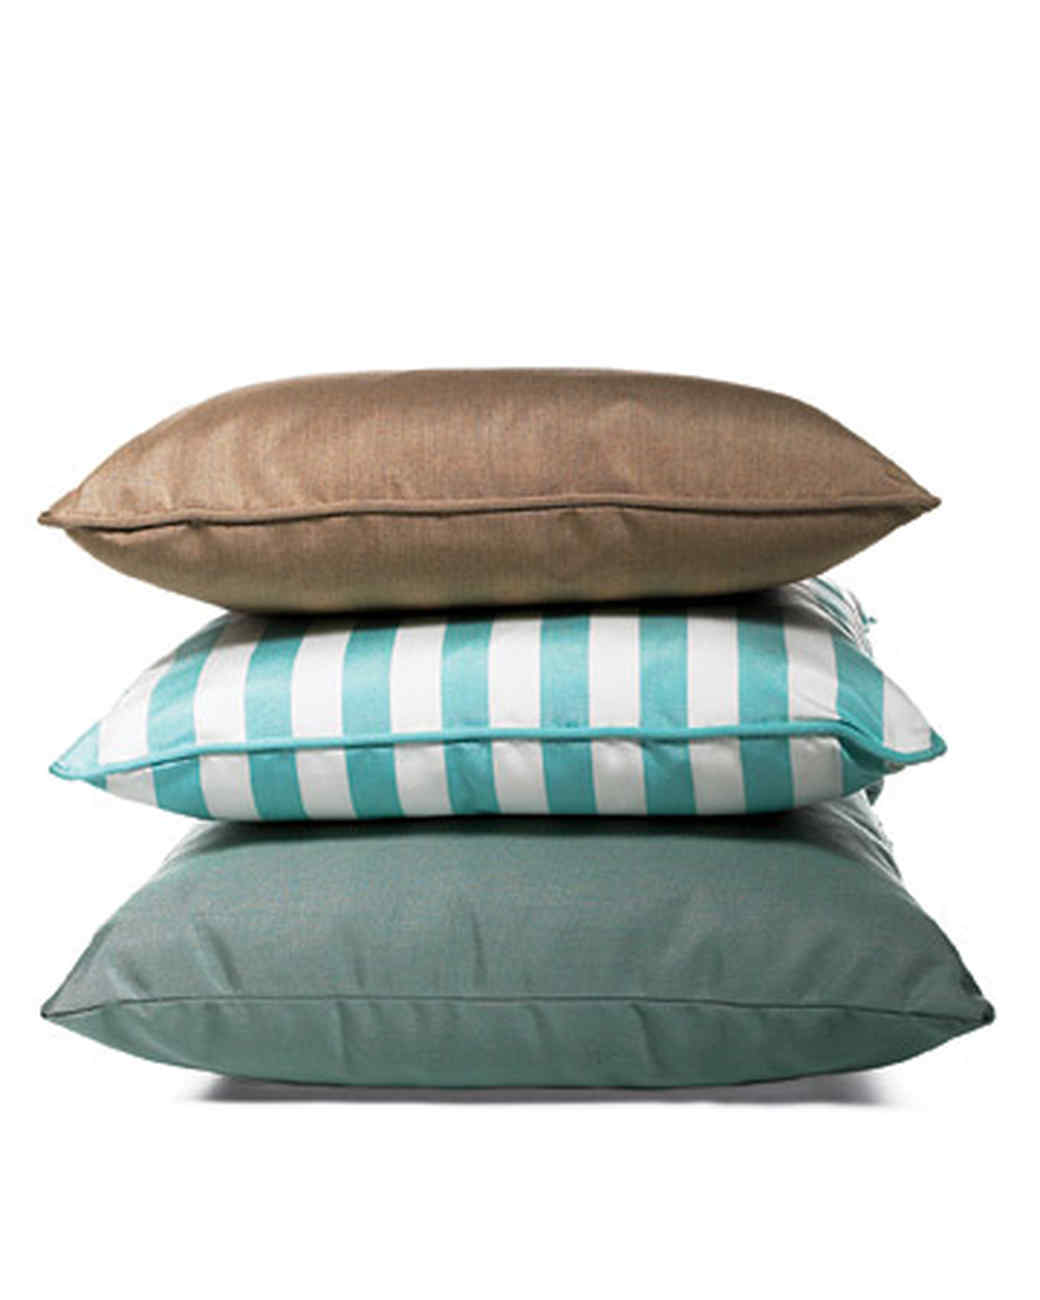 mld103876_0608_pillows.jpg